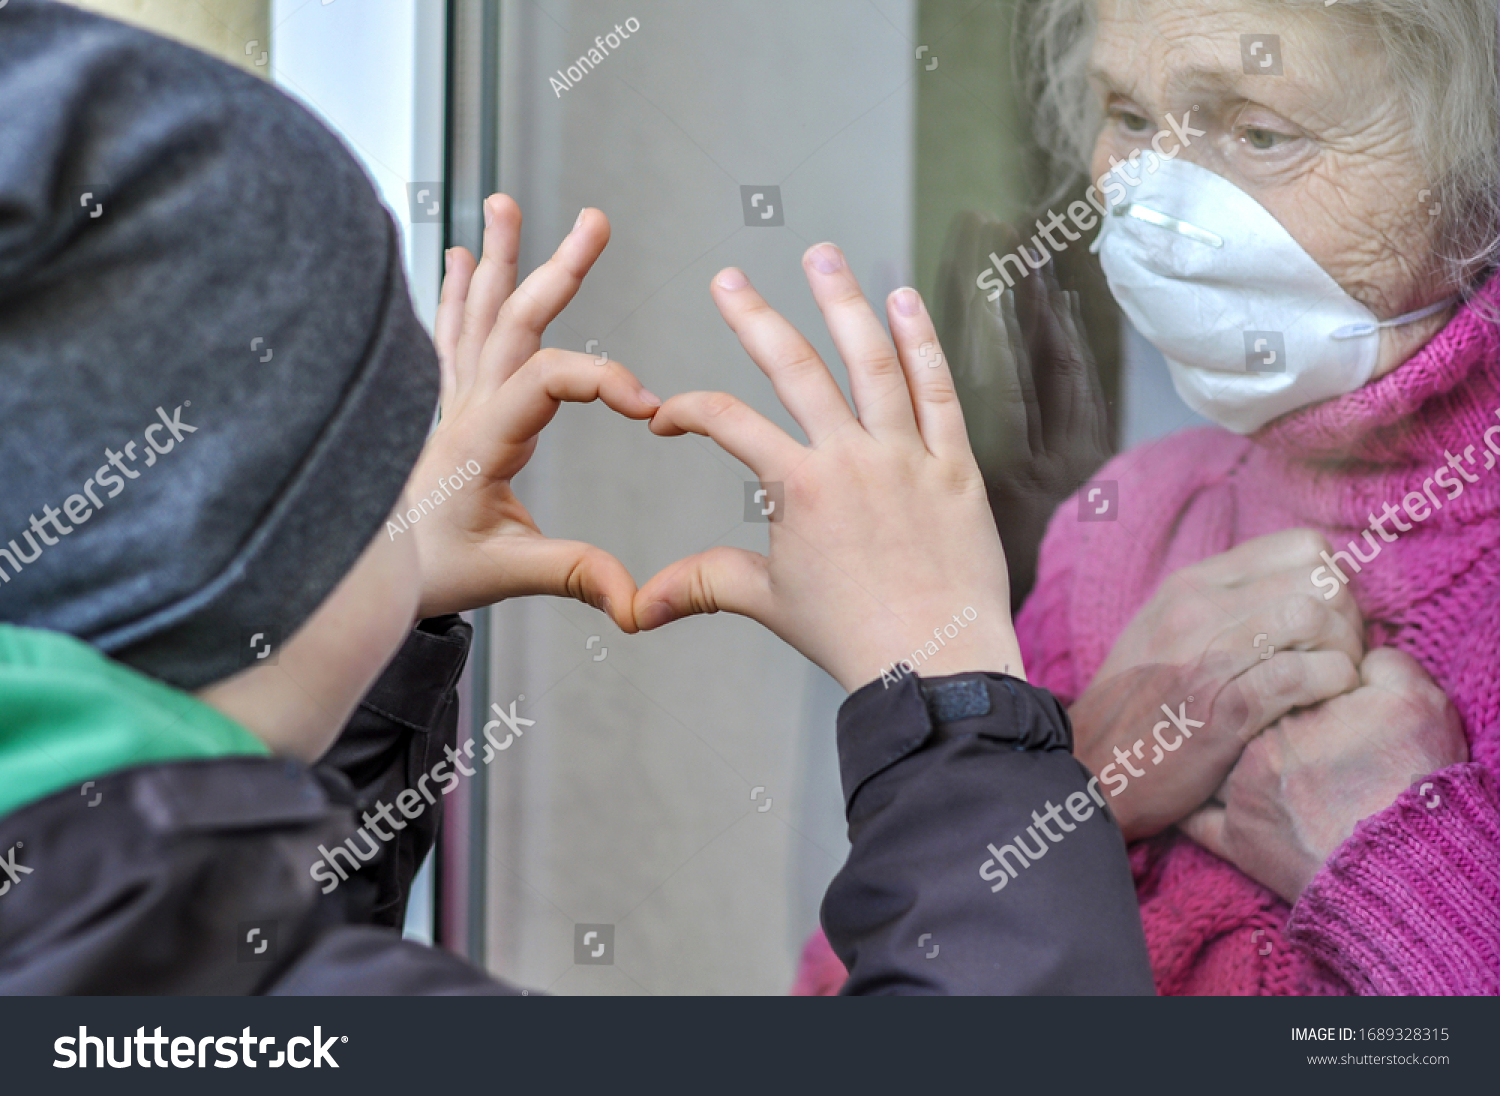 Grandmother mature woman in a respiratory mask communicates with her grandchild through a window. Elderly quarantined, isolated. Coronavirus covid-19. Caring with older people. Family values, love #1689328315